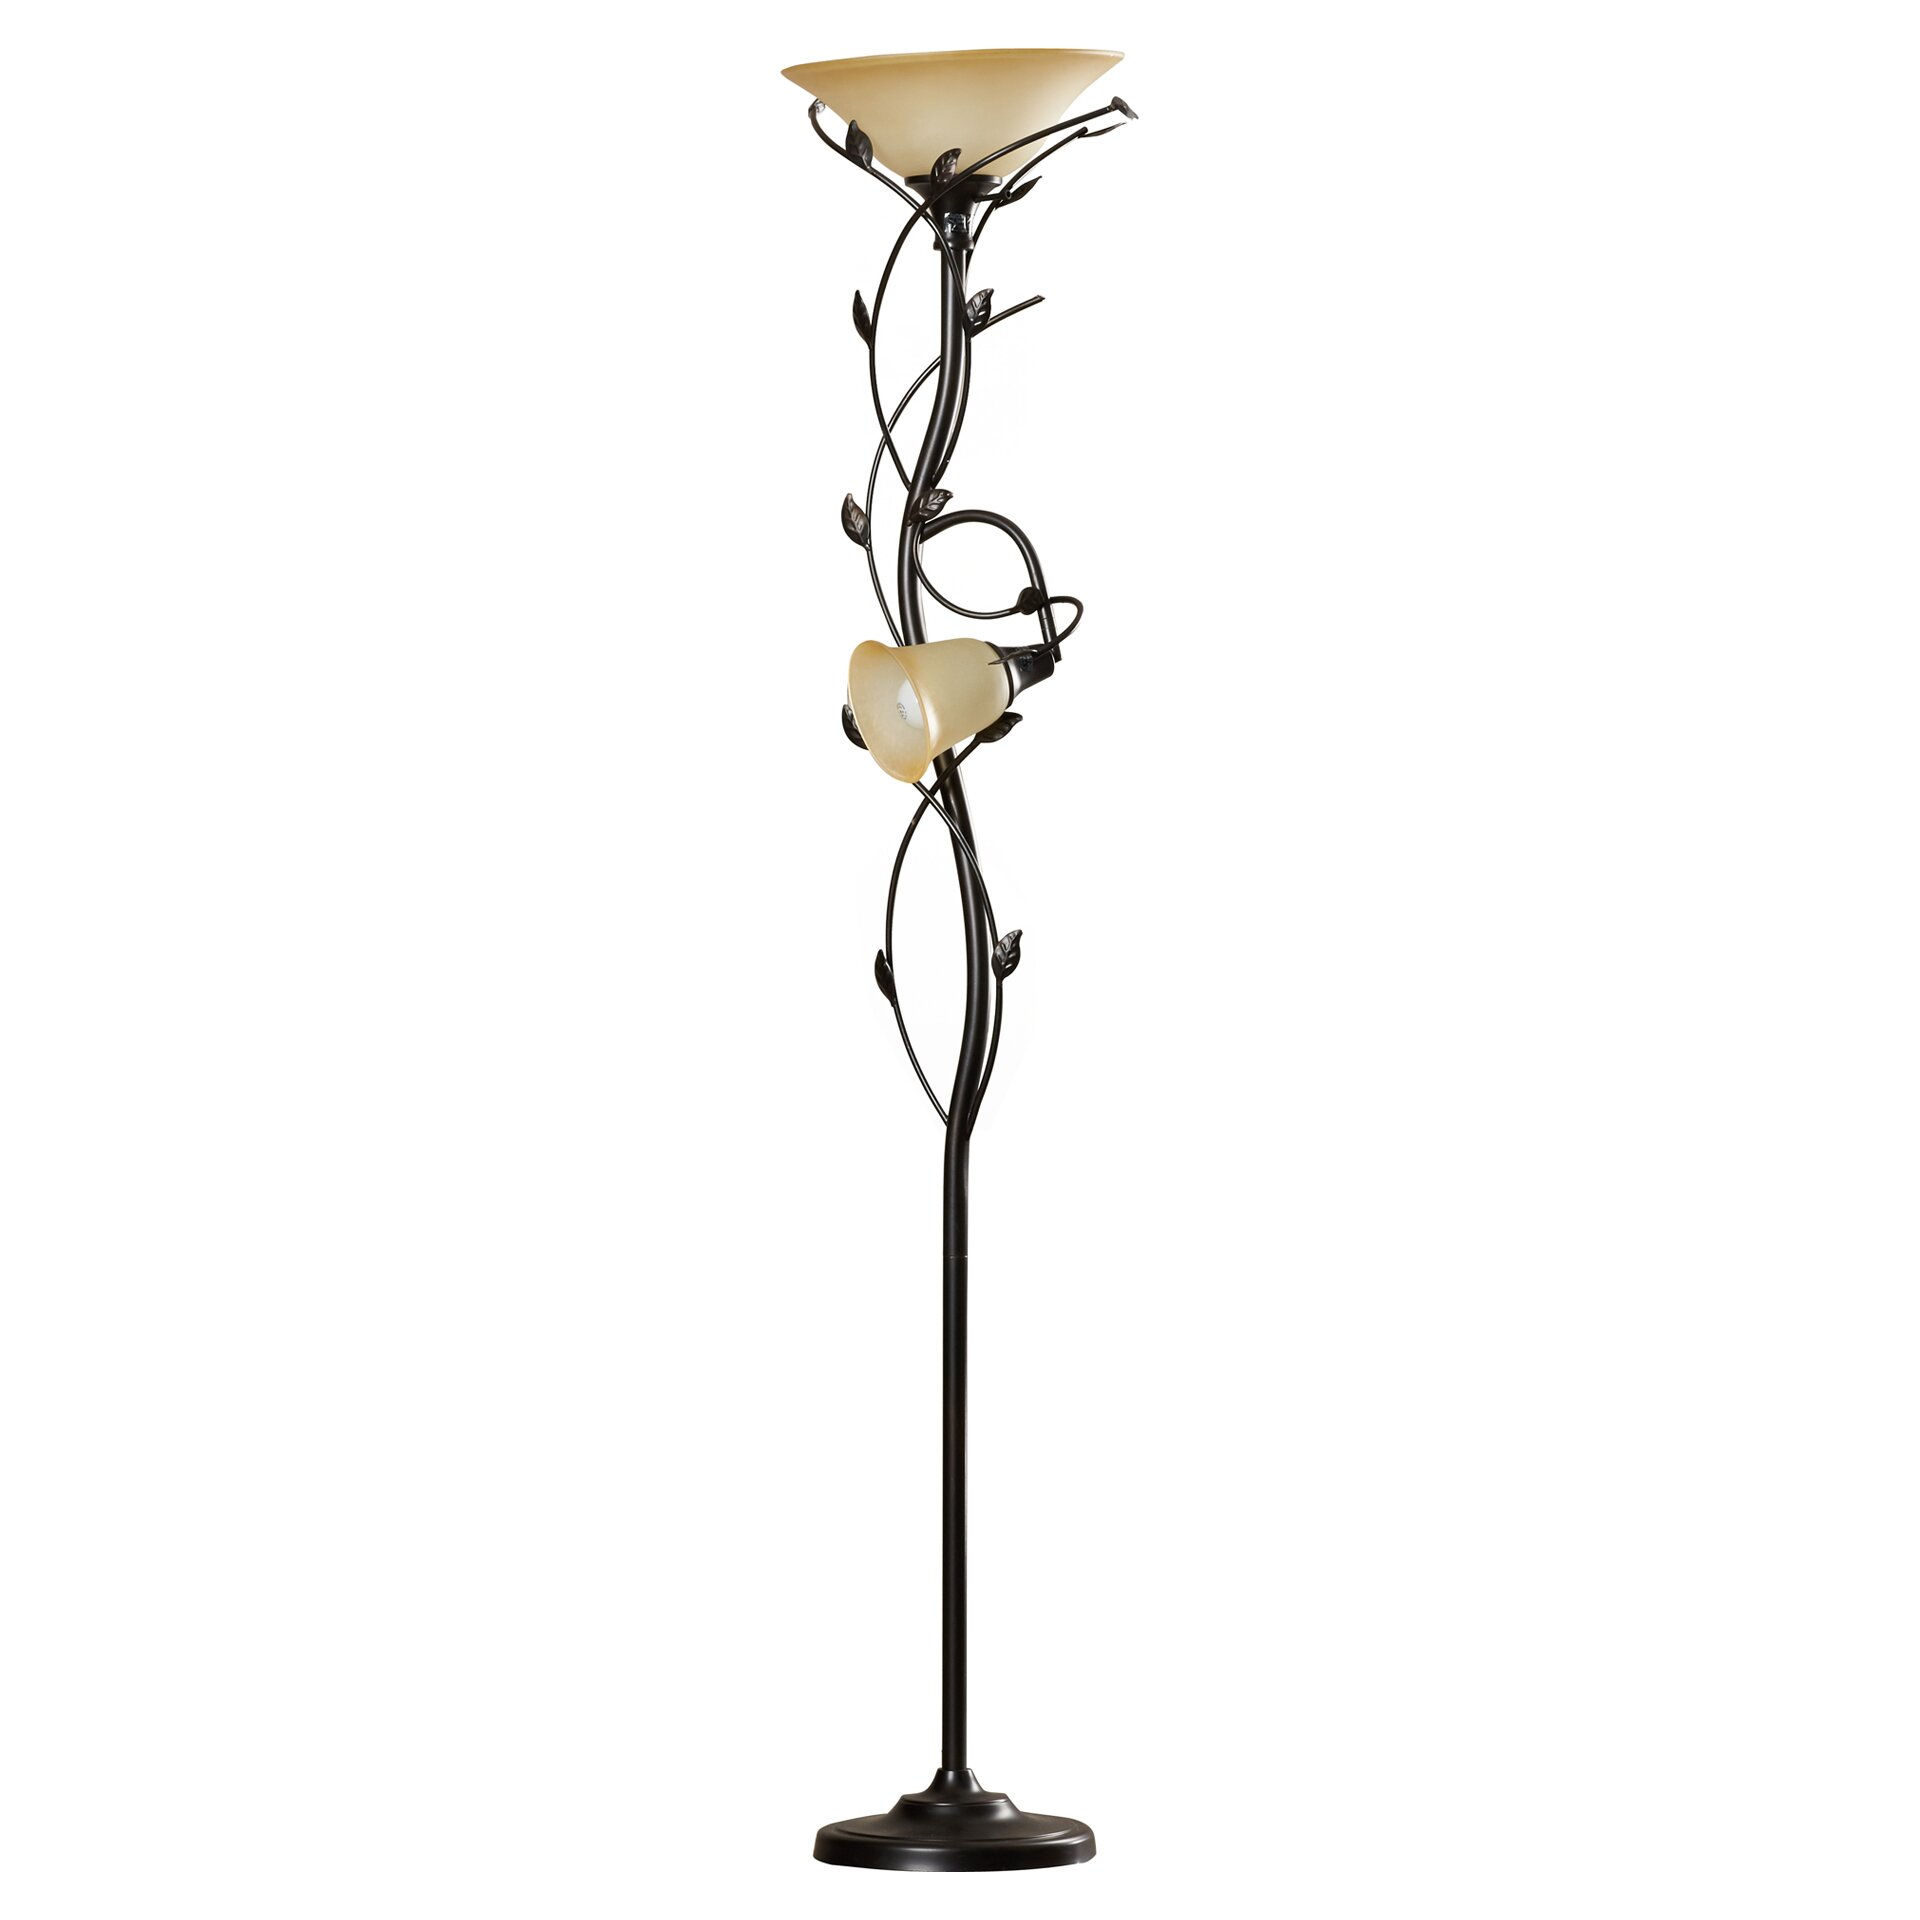 Alcott hill crystal 72quot led torchiere floor lamp reviews for Floor lamp vs torchiere